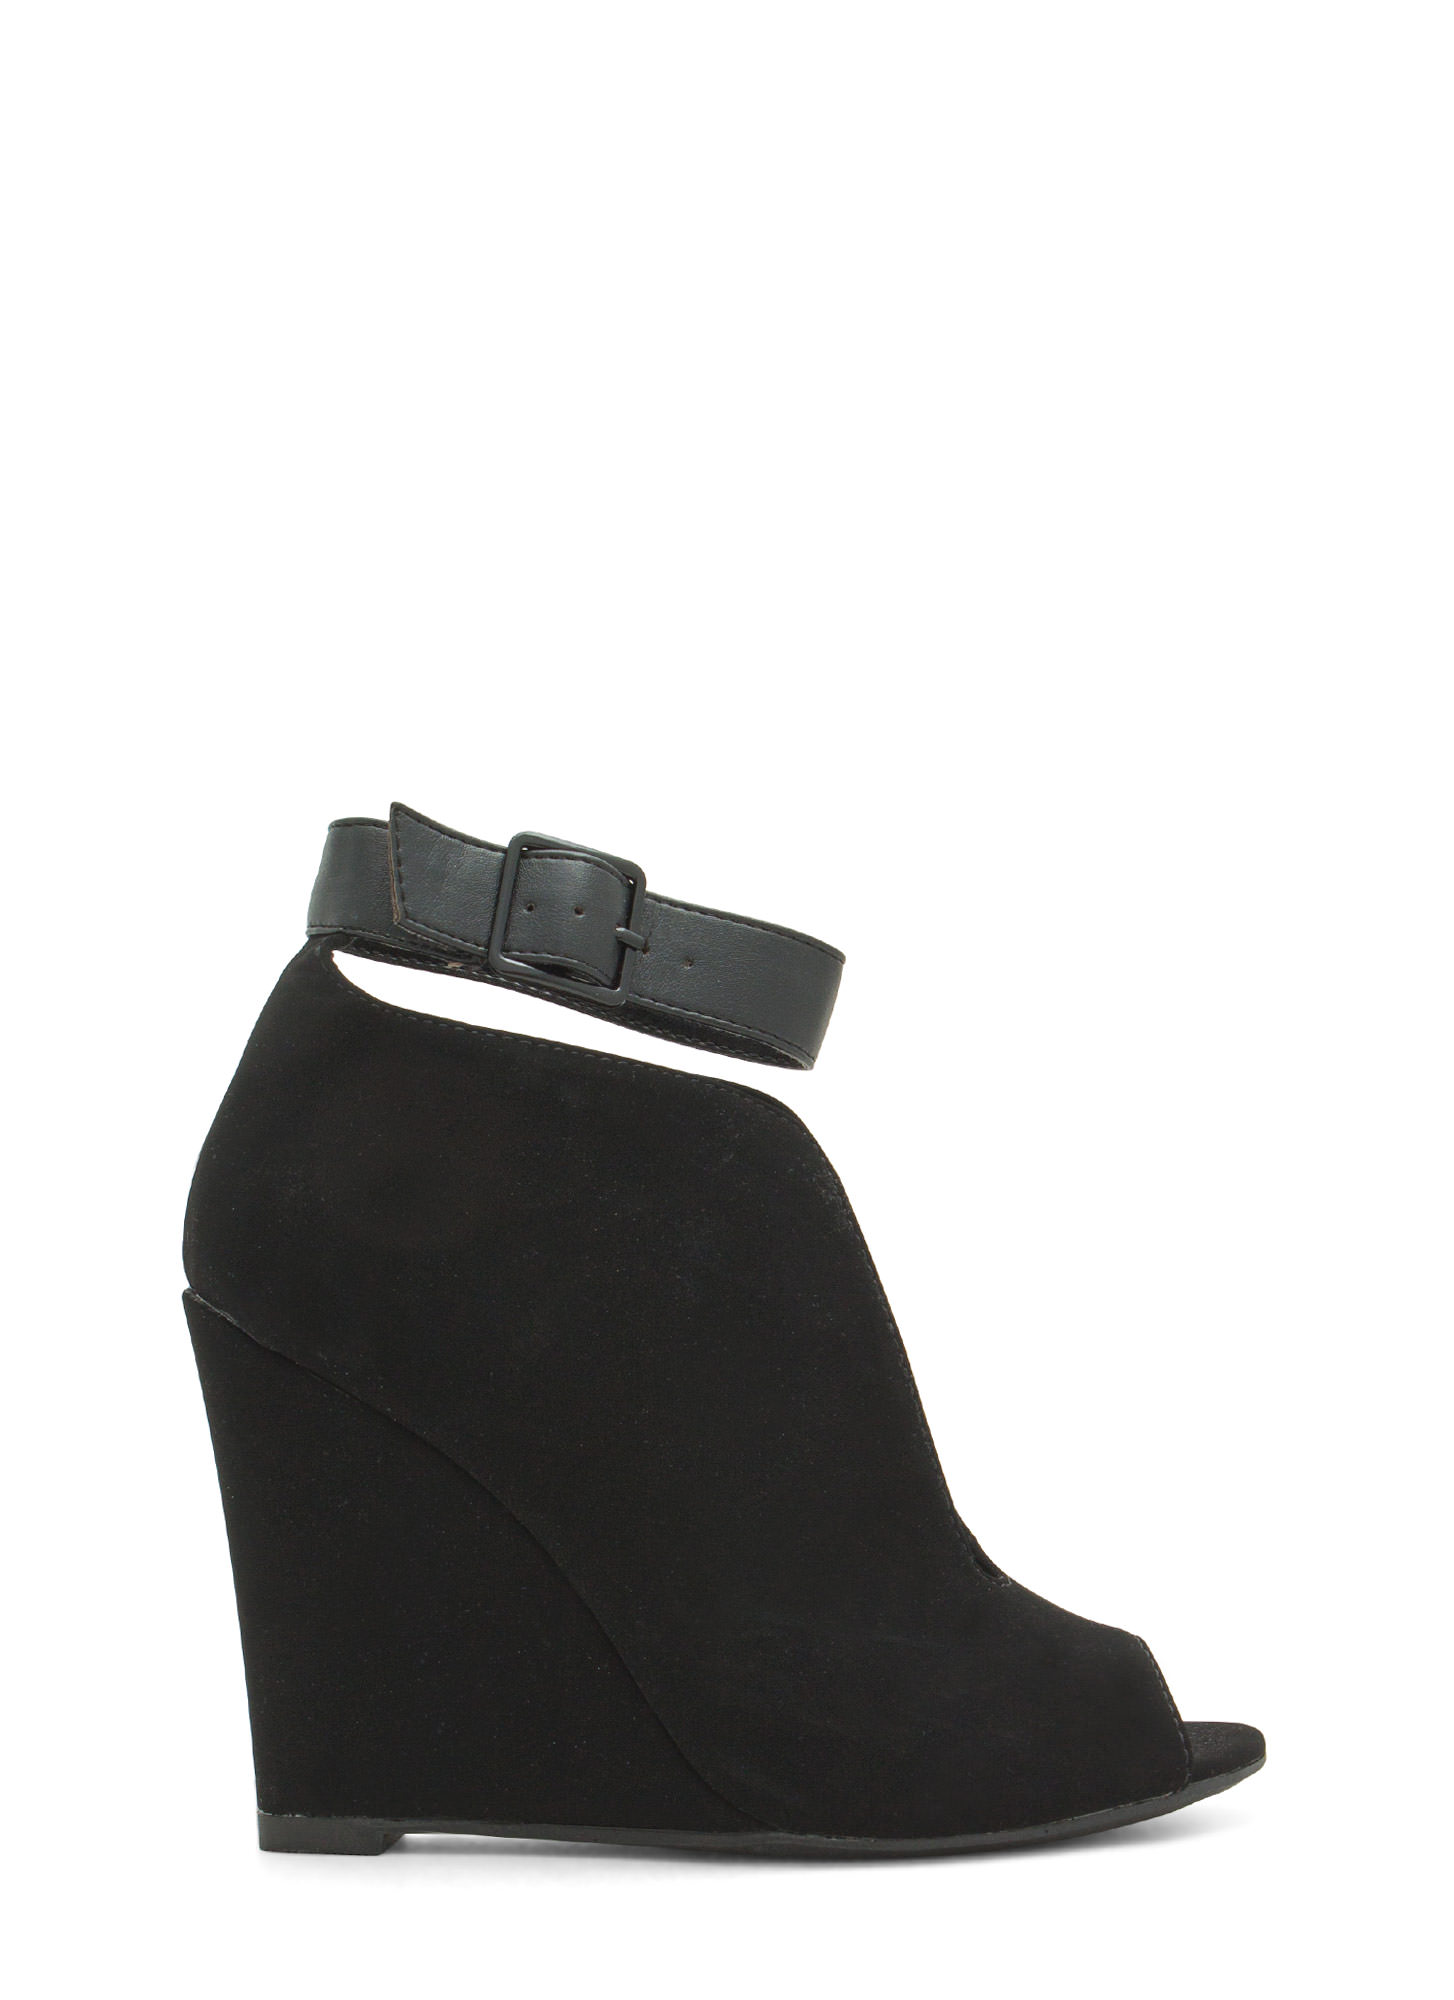 Top Notch Ankle Strap Bootie Wedges BLACK